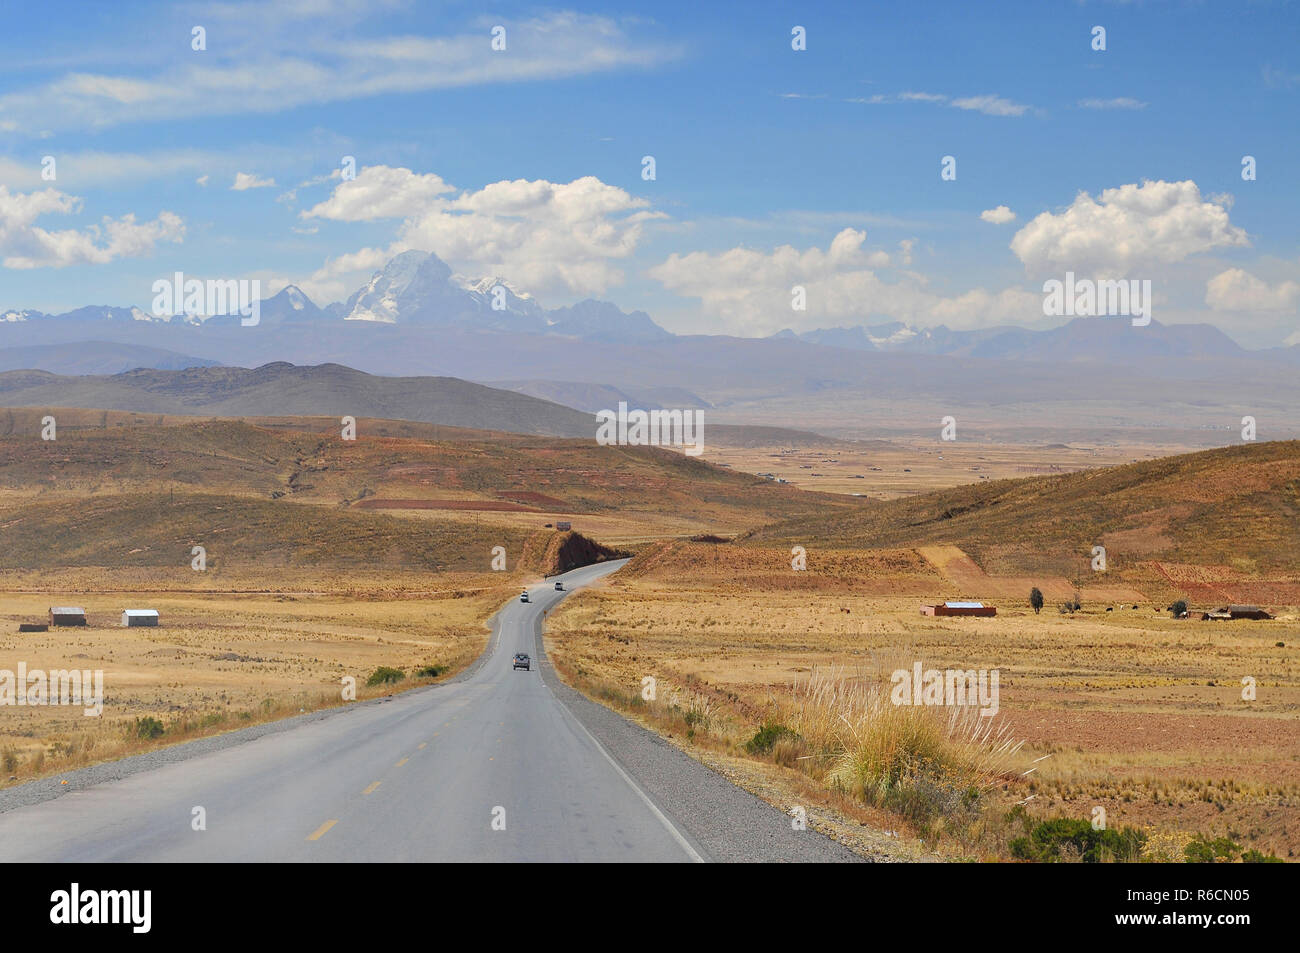 Bolivia, Cordillera Real From The Road To La Paz - Stock Image